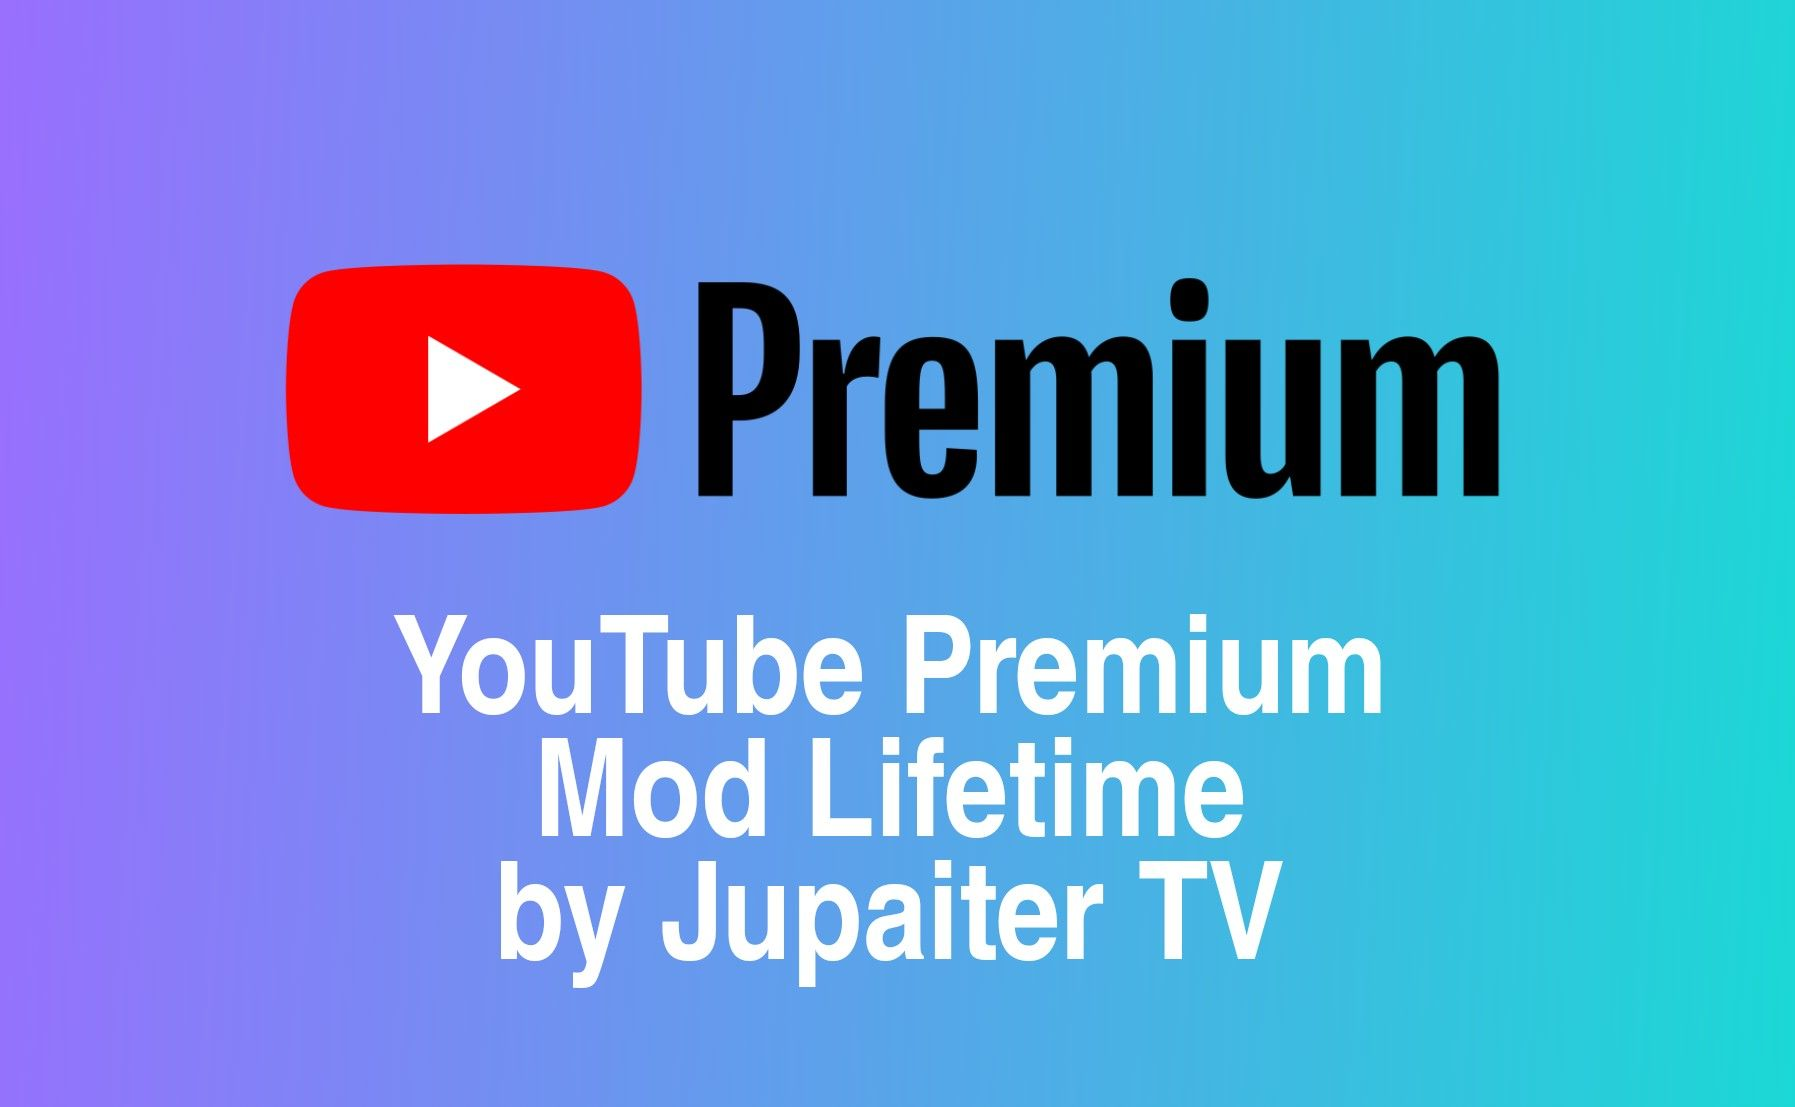 Youtube Premium Mod Lifetime